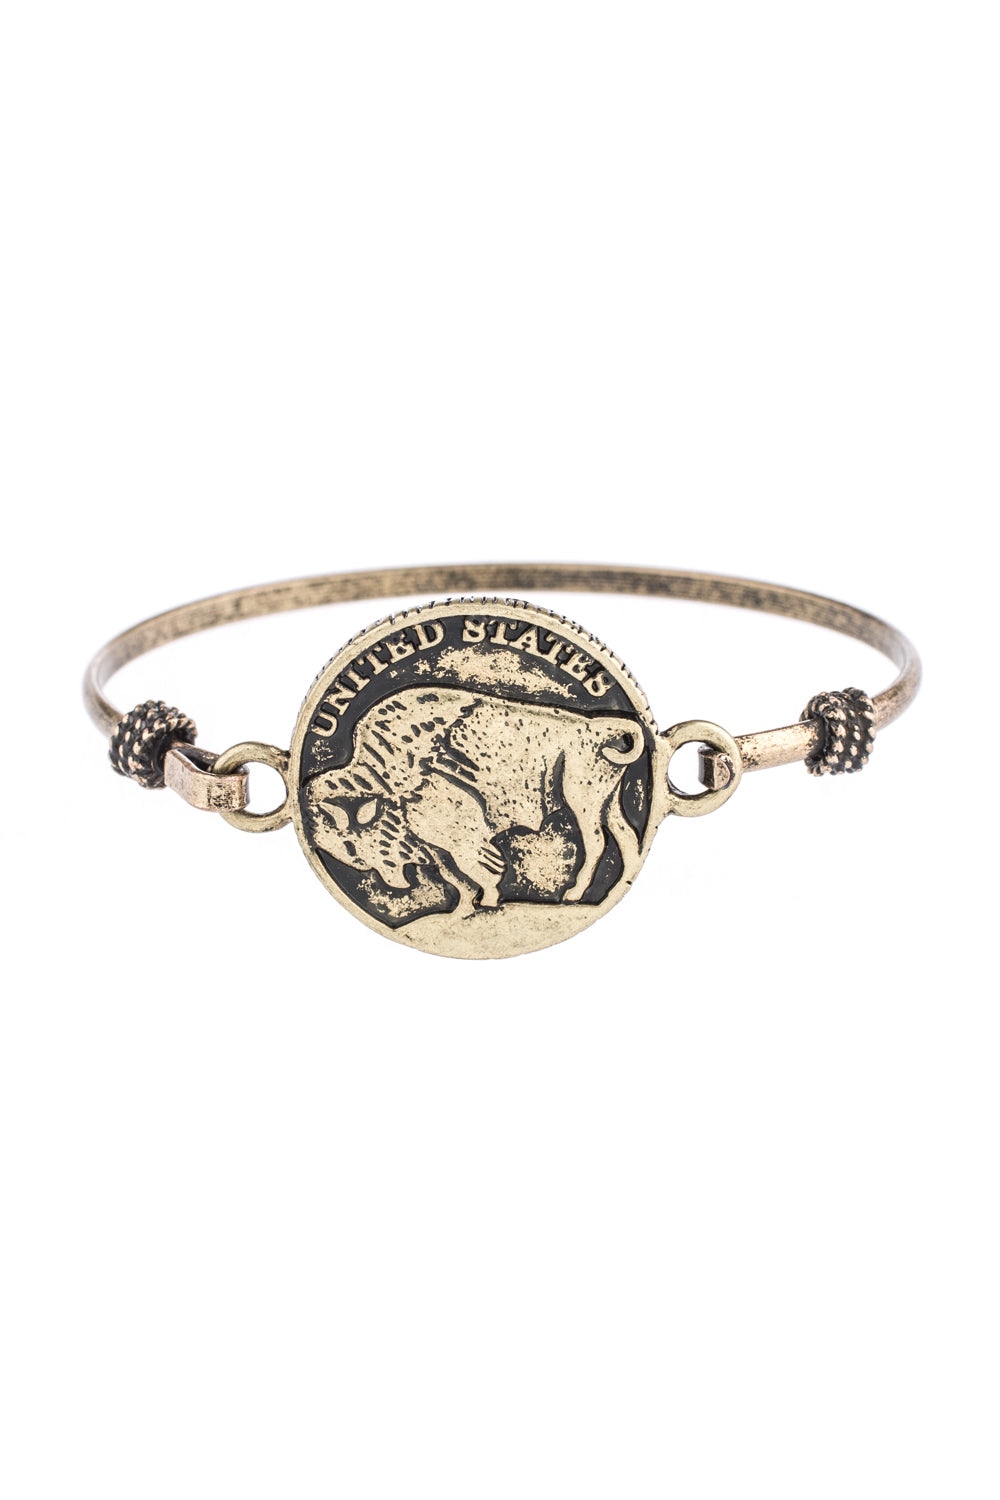 Type 3 Buffalo Soldier Bracelet